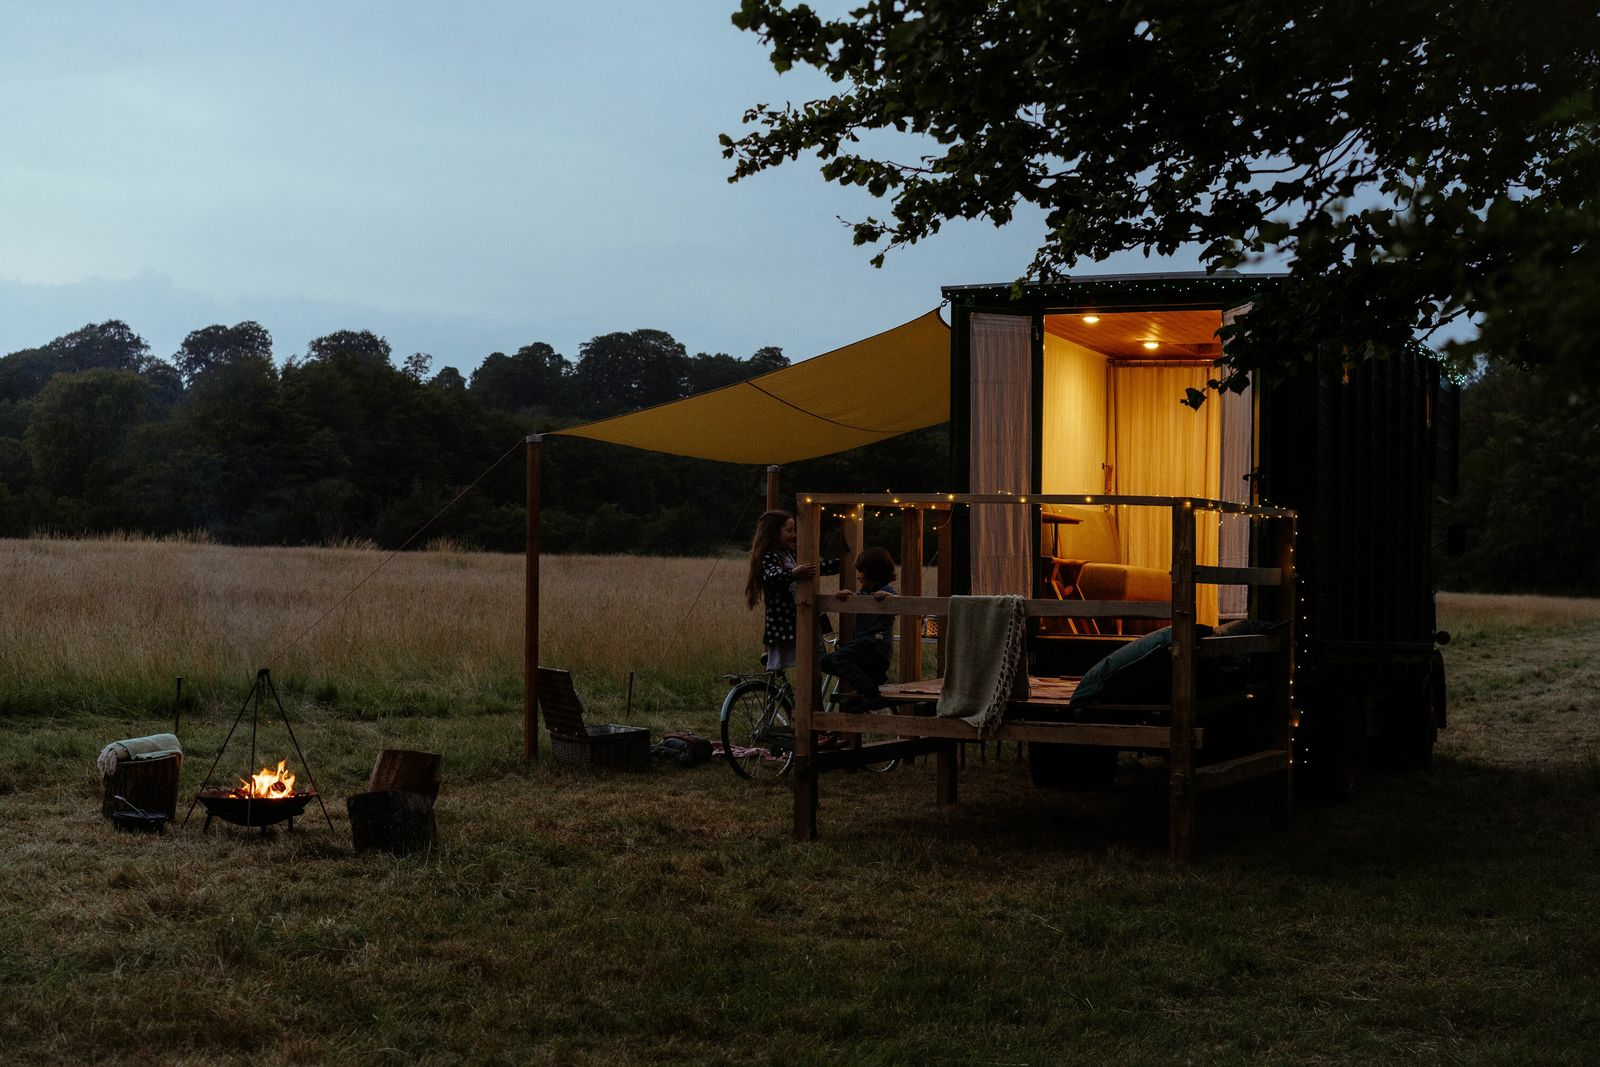 Abbeyfield Glamping's converted 1964 Bedford TK opened in August 2020, offering guests such luxuries as a ...